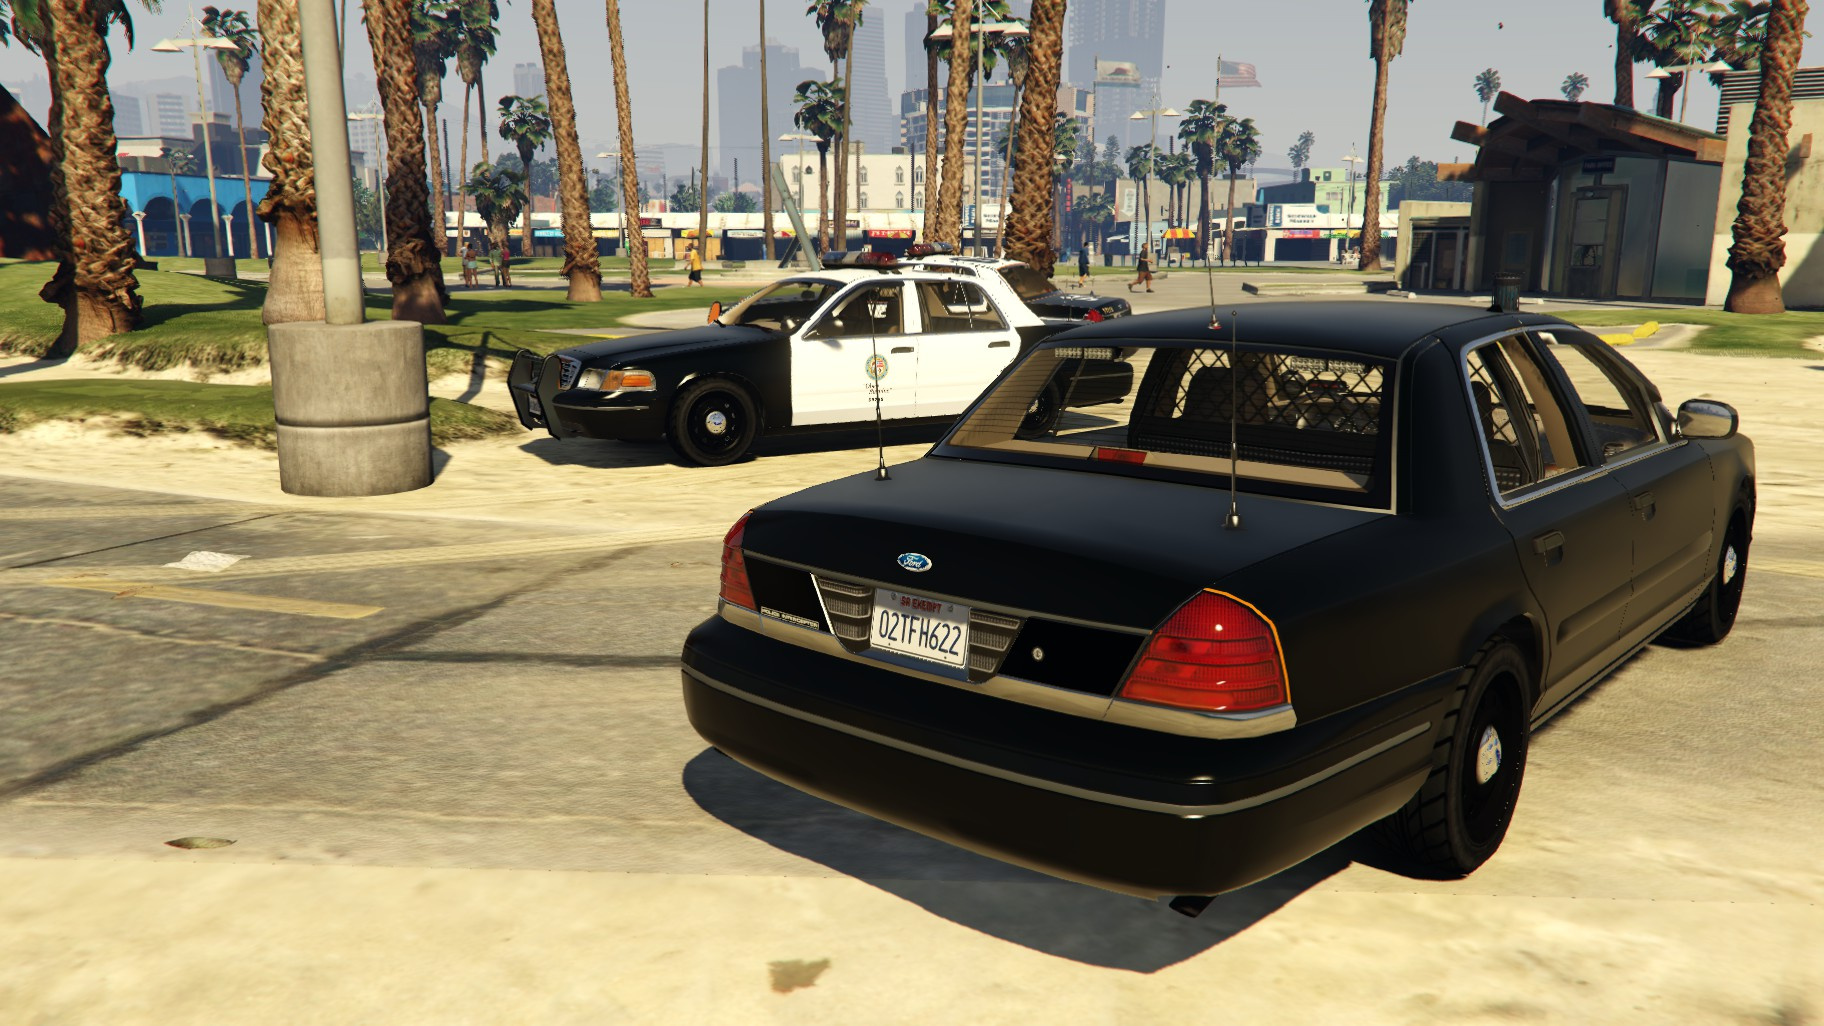 Unmarked police car gta 5 - Lspd Hd And Unmarked Liveries For 1999 Cvpi